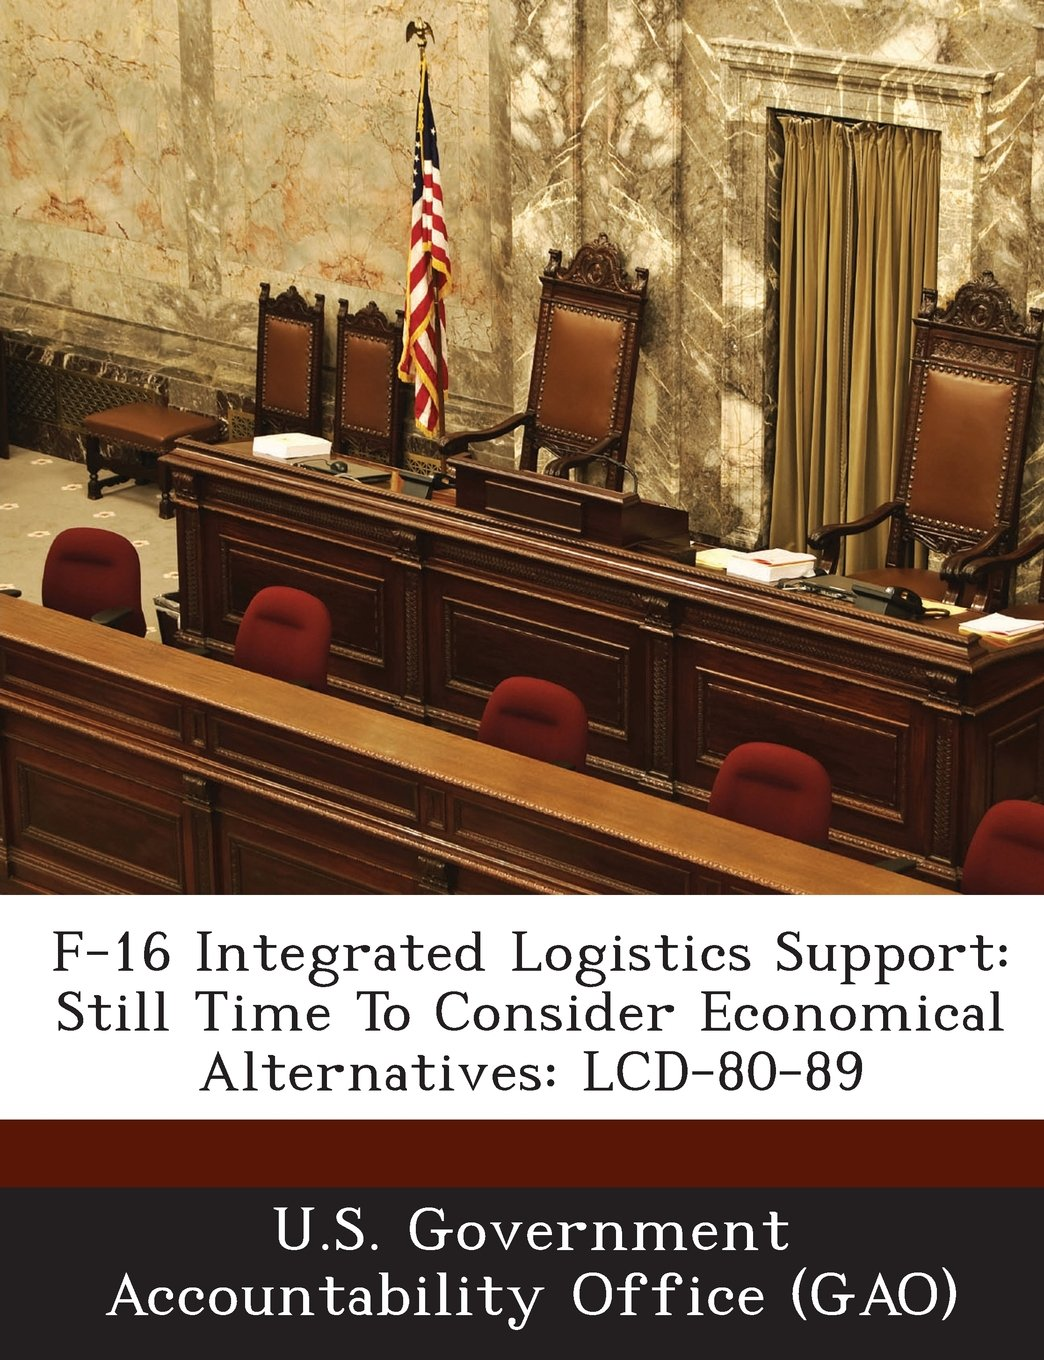 F-16 Integrated Logistics Support: Still Time to Consider Economical Alternatives: LCD-80-89 pdf epub